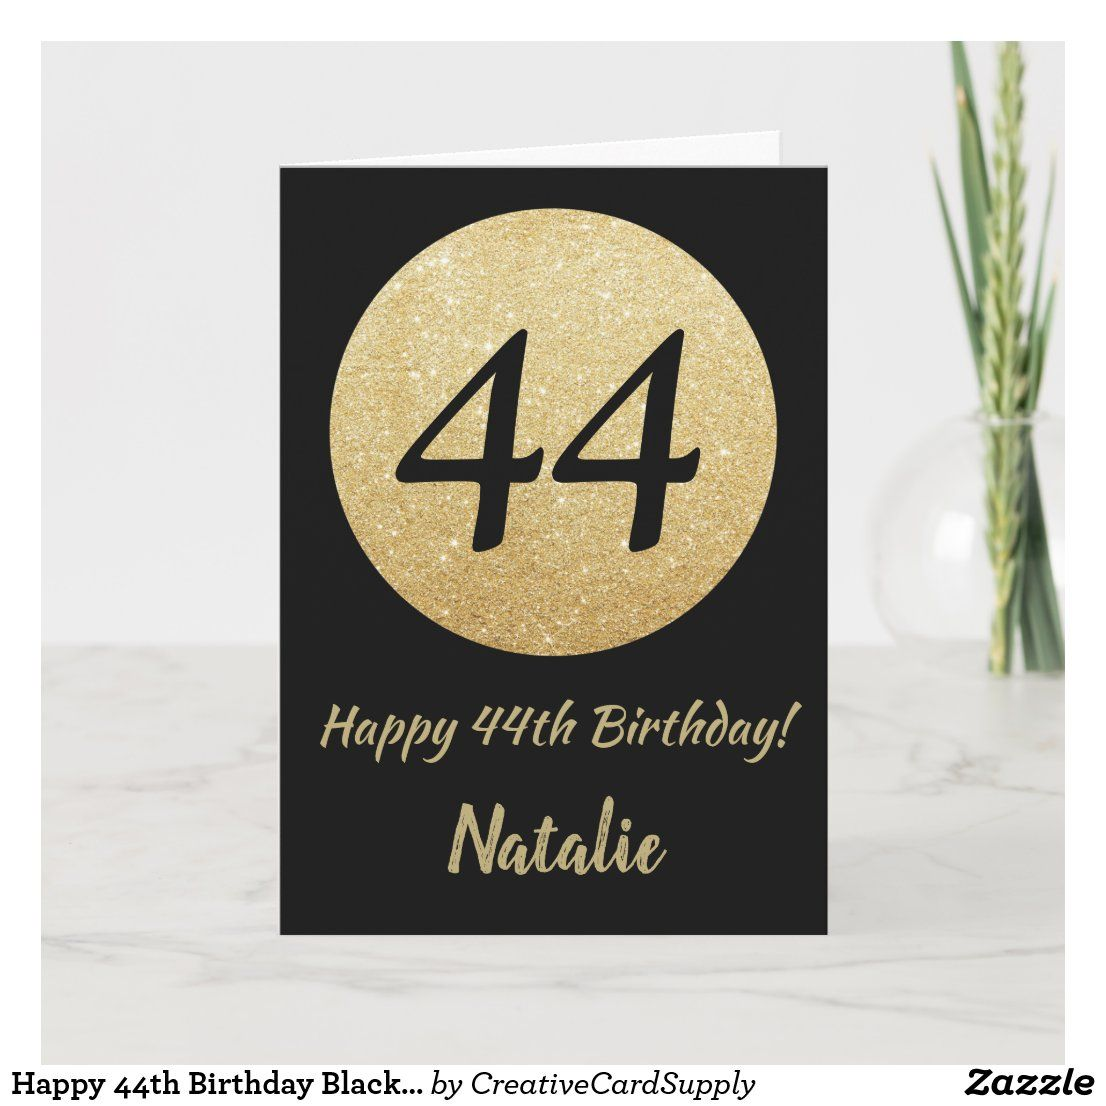 Happy 44th Birthday Black and Gold Glitter Card